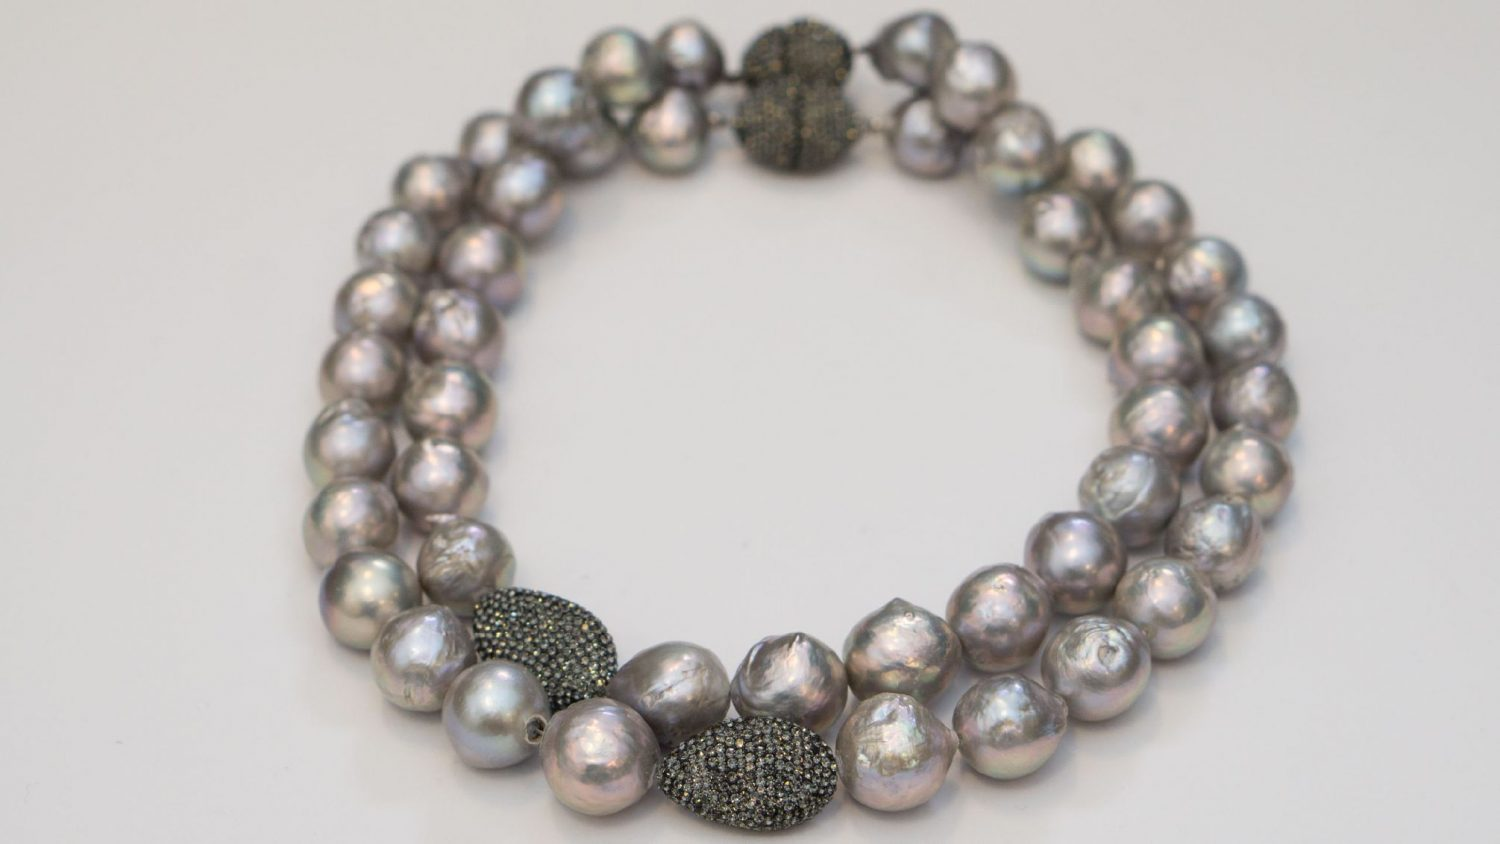 Large Gray Baroque Freshwater Pearl Necklace